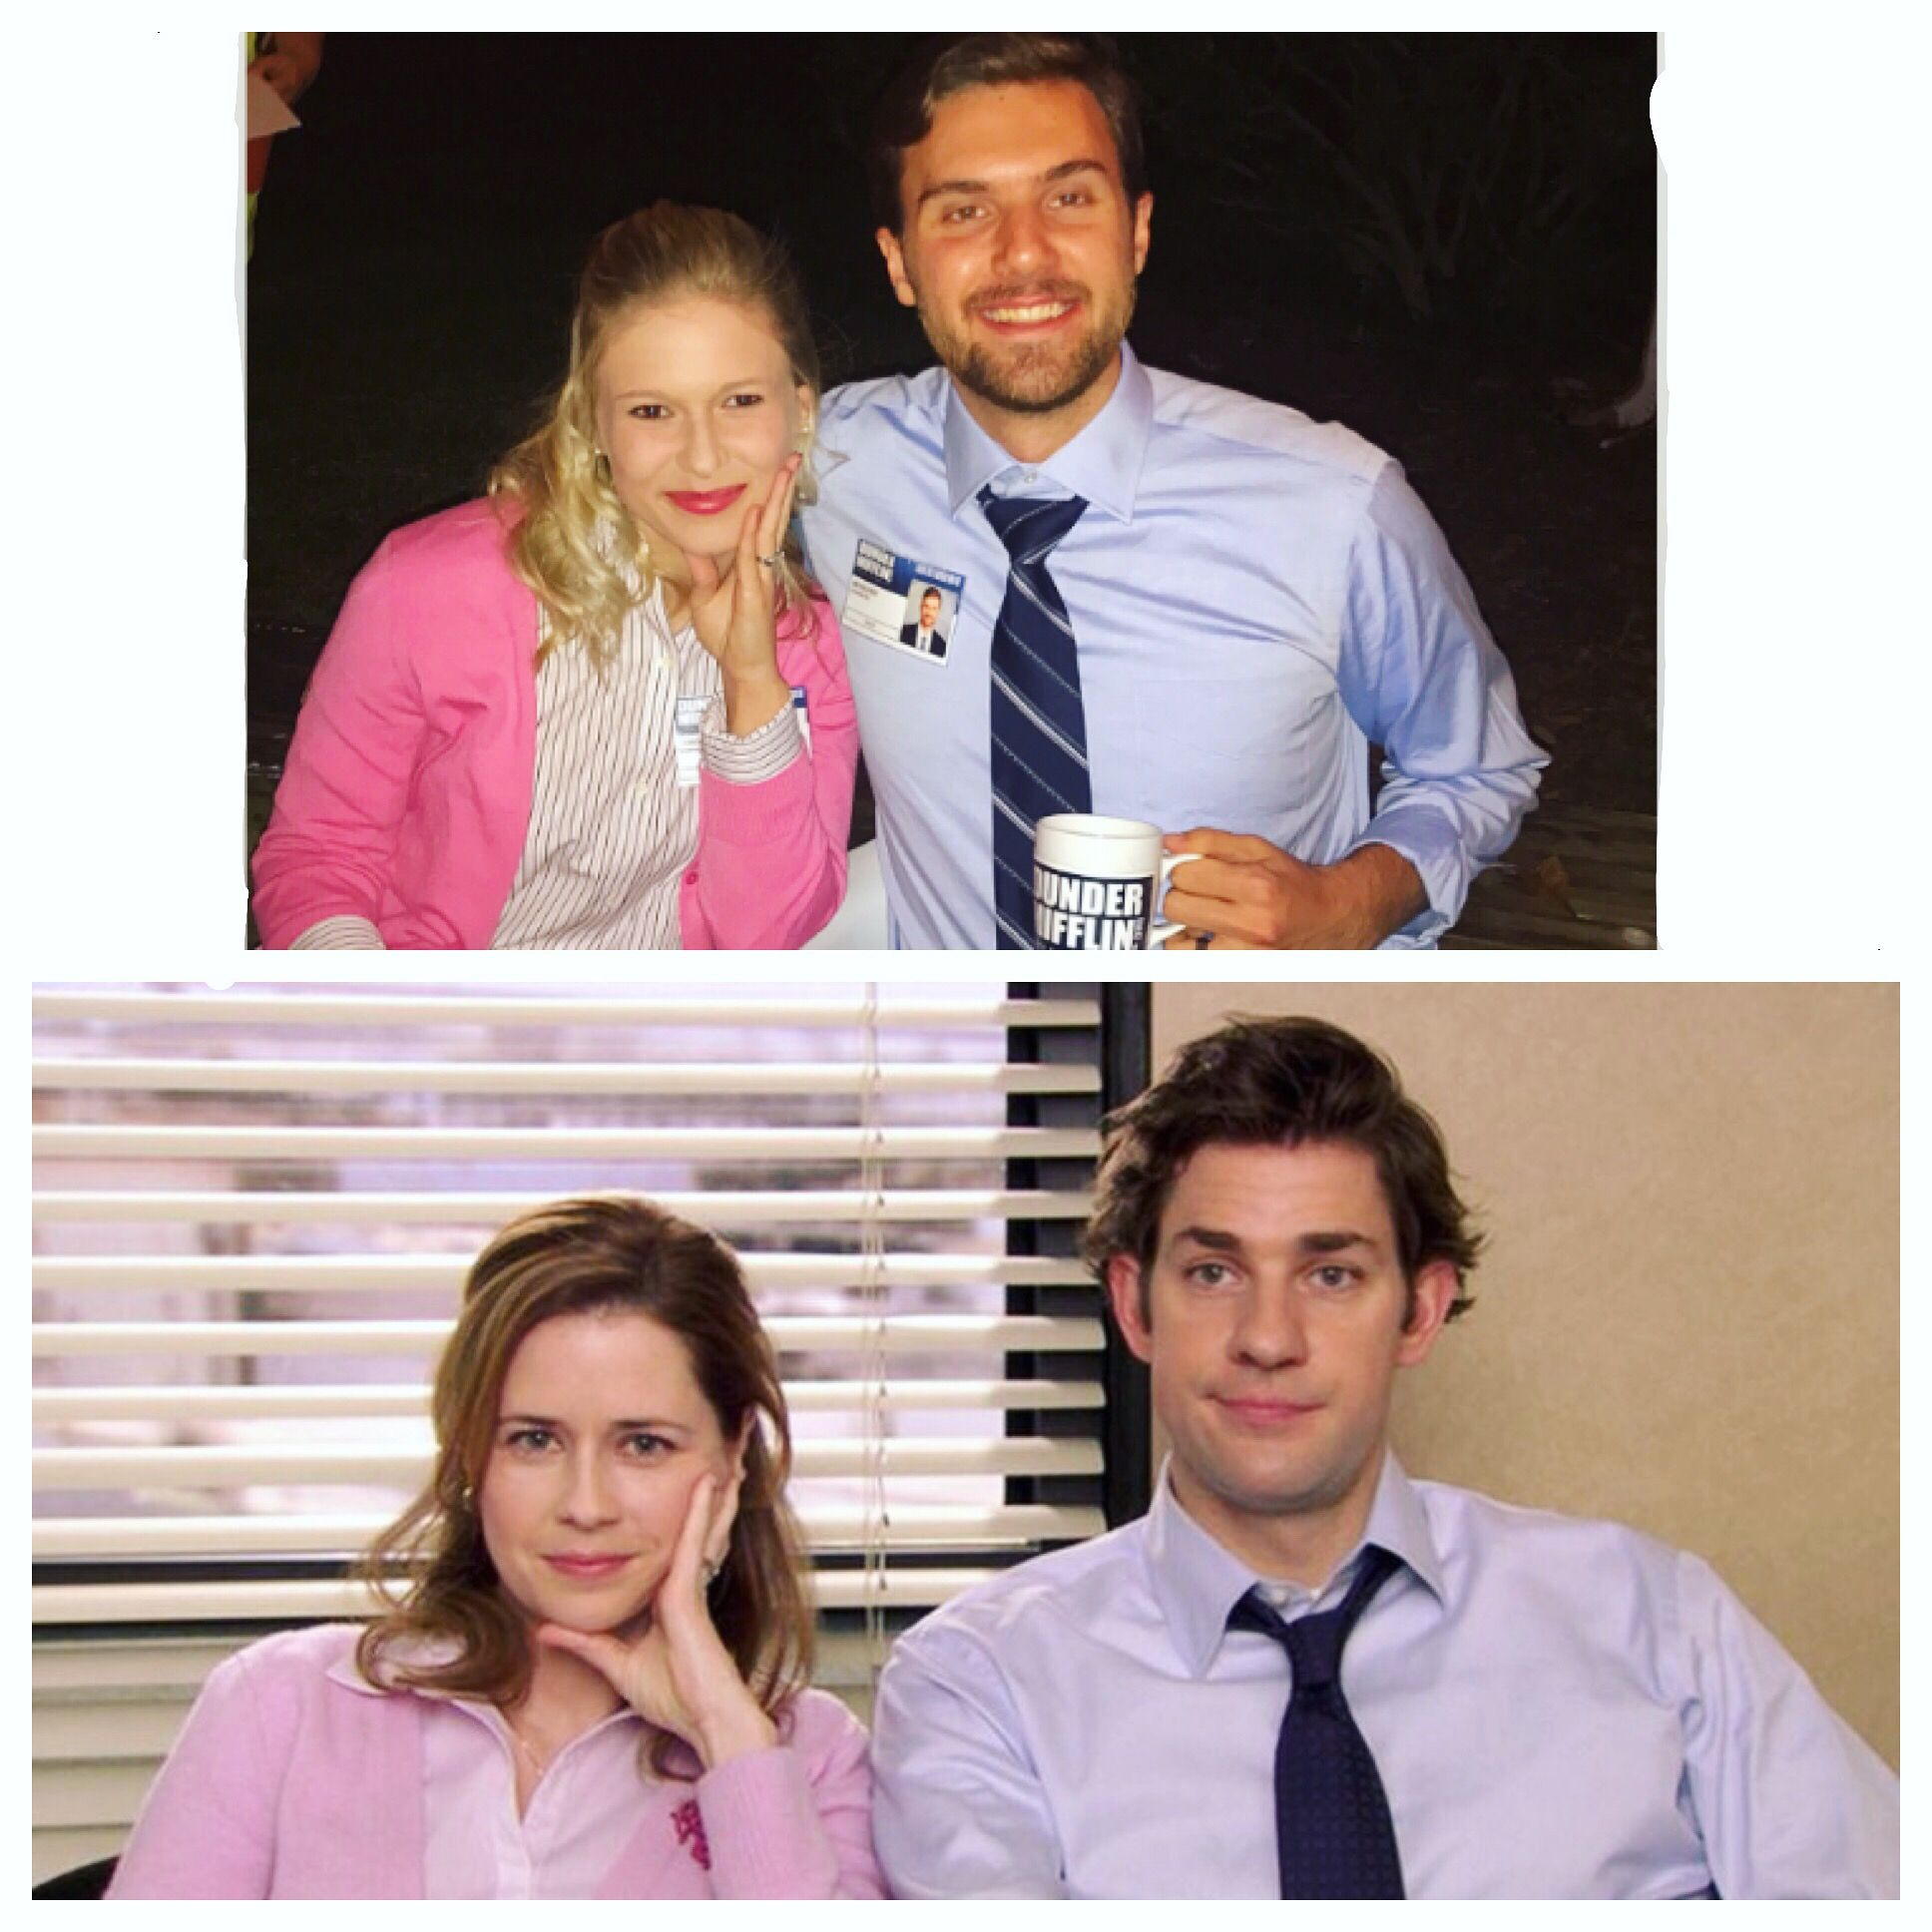 the office jim and pam costume halloween dress up couple | diy